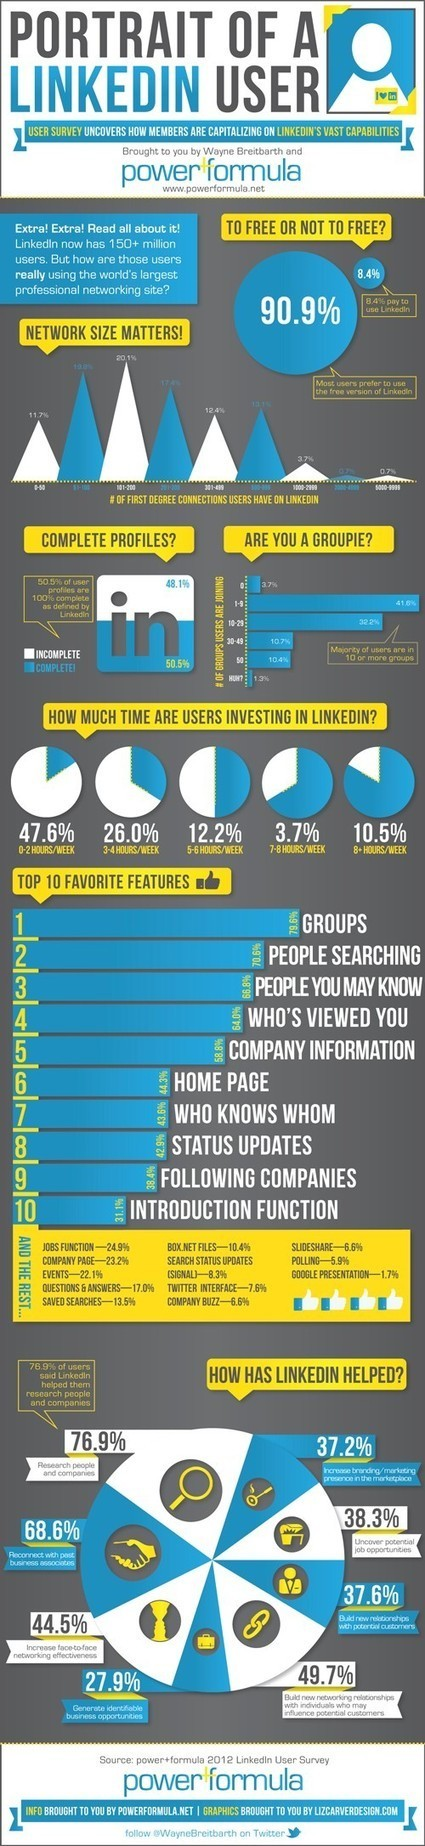 How to Harness the Power of LinkedIn – #INFOGRAPHIC | AtDotCom Social media | Scoop.it